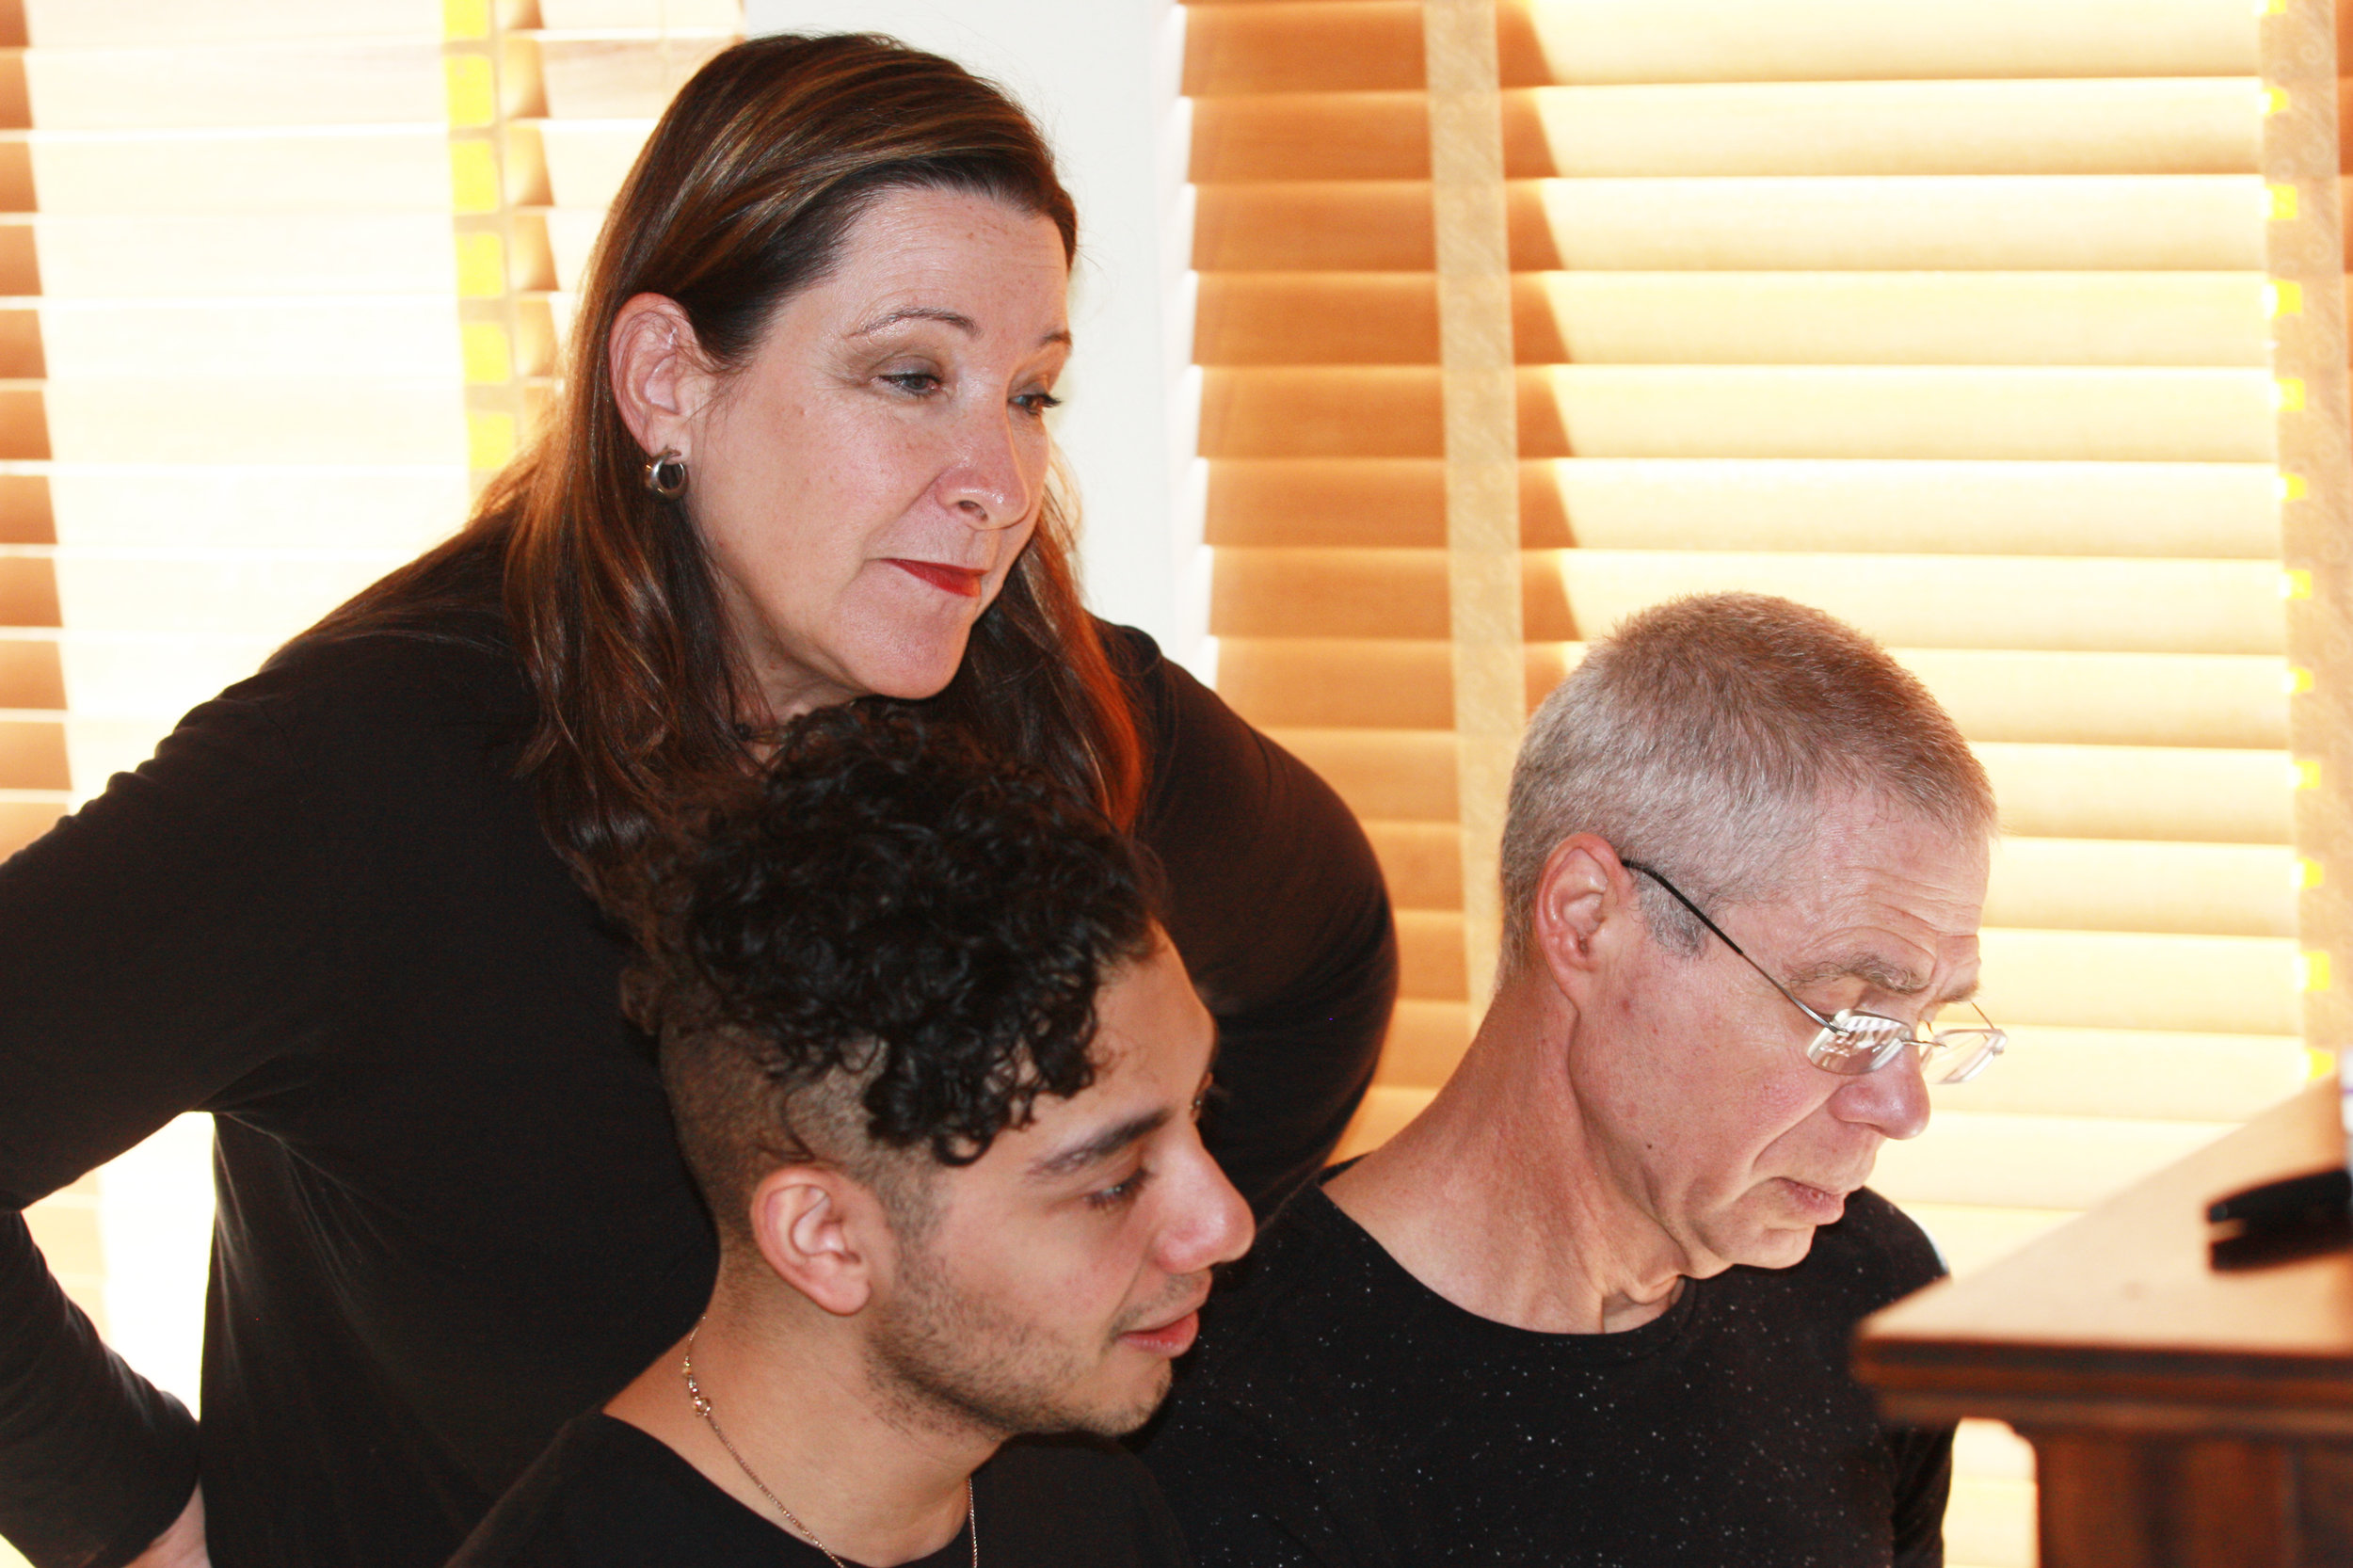 Cynthia Stokes, Director (standing), Joseph Waters, Composer (glasses) & Rodolfo Giron, Singer (seated) - Right Click to Download (Photo Credit Christian Teare)